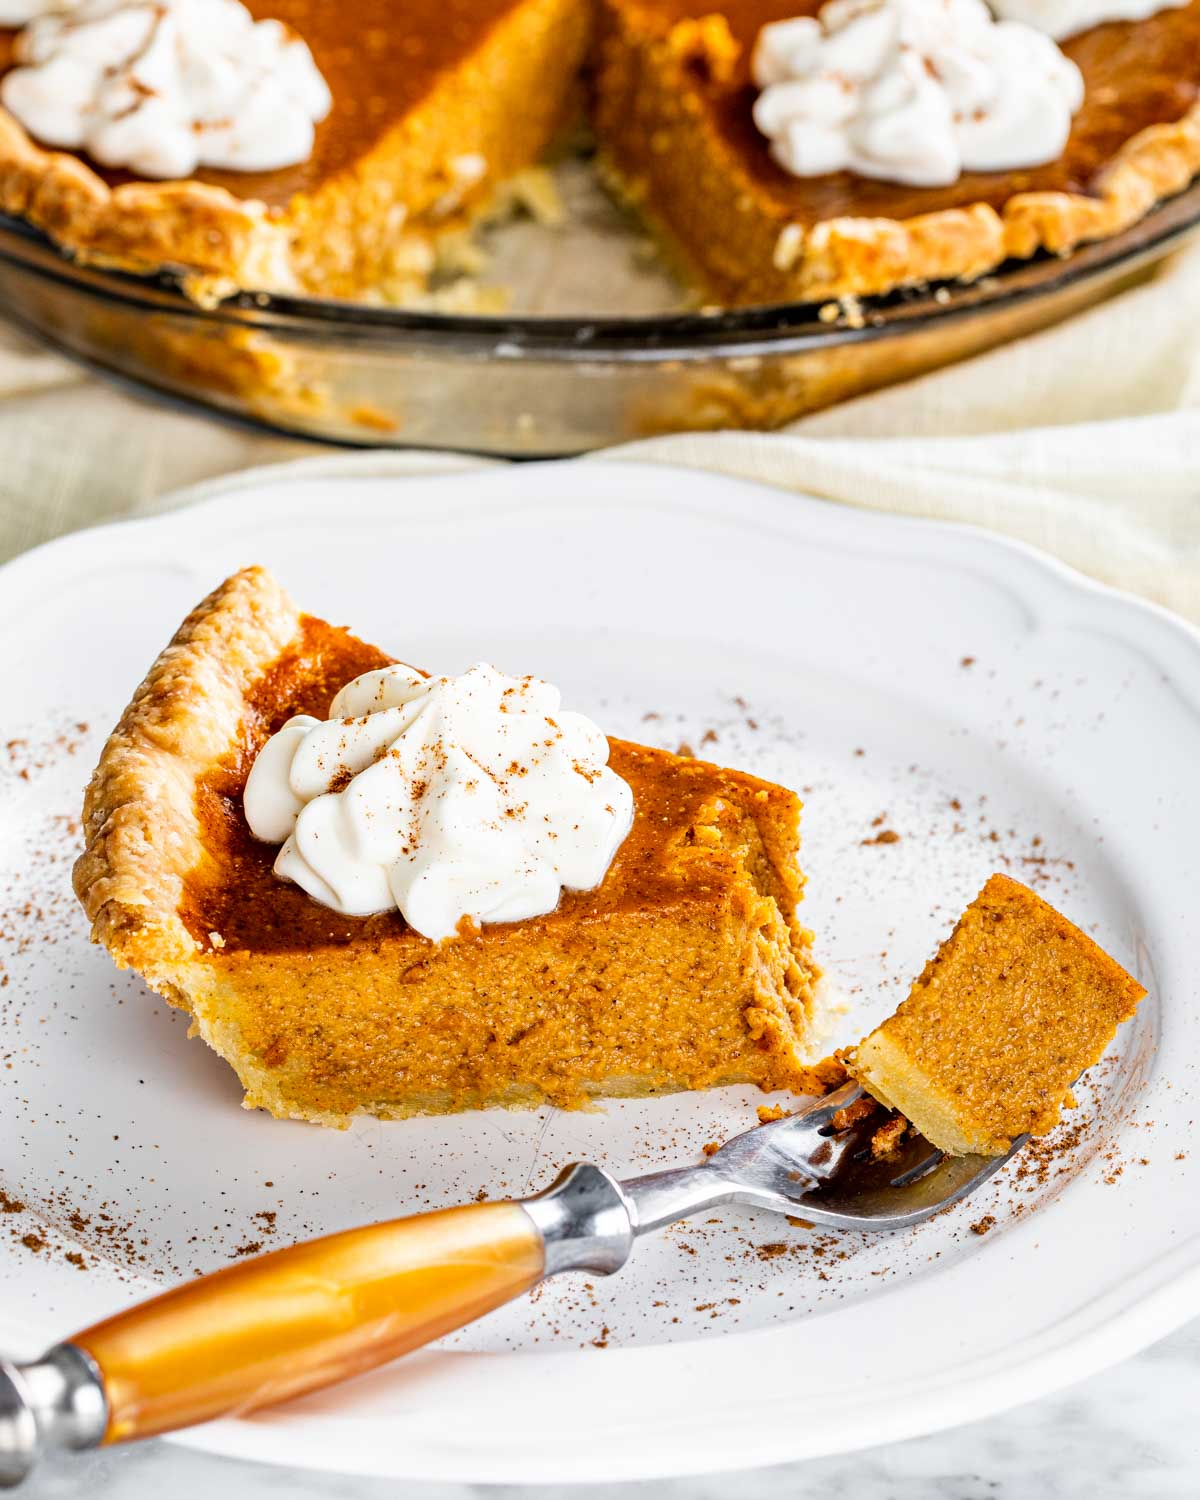 a slice of pumpkin pie on a white plate.